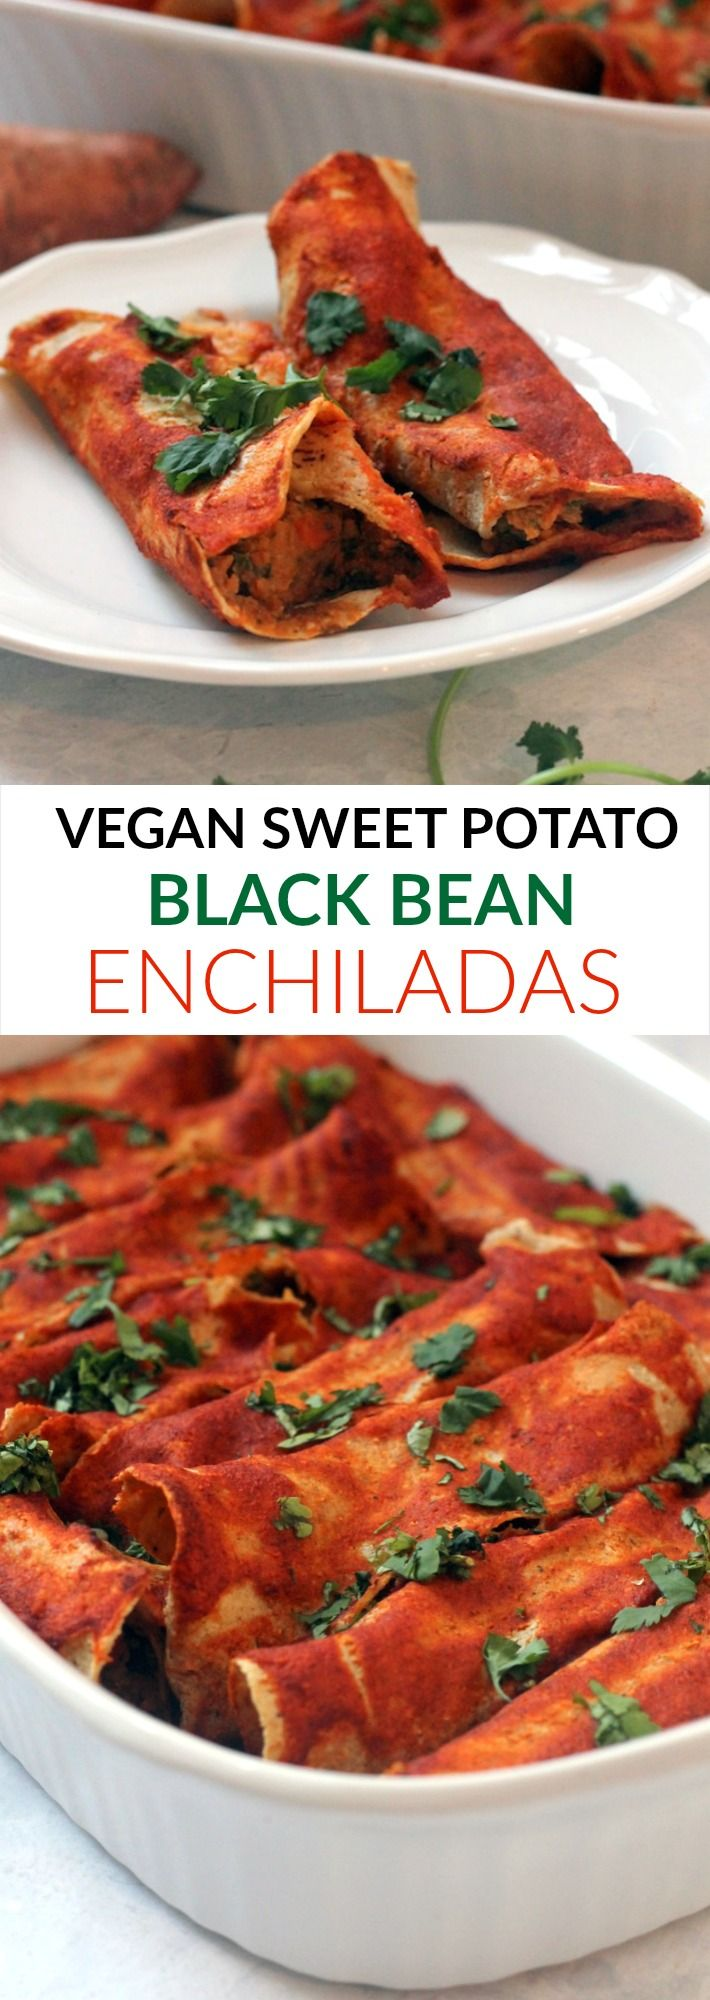 These VEGAN Sweet Potato Black Bean Enchiladas are the perfect crowd pleasing entree! Full of flavor and plant protein. Can be made gluten-free!